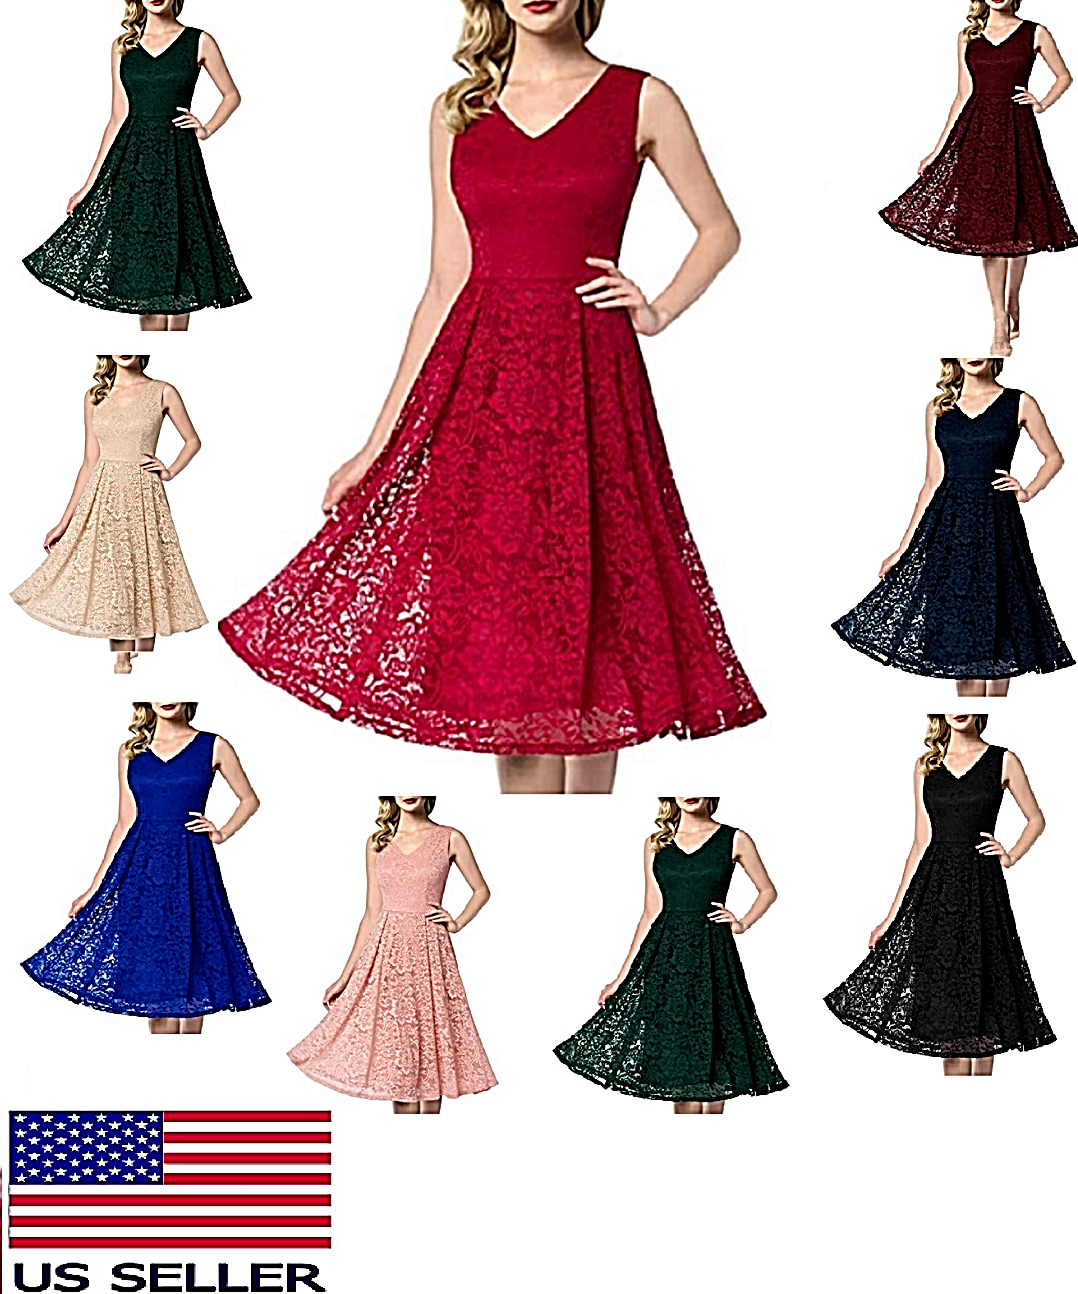 Women's Vintage Floral Lace Cocktail Dress V Neck Fit & Flare Midi Wedding Party Clothing, Shoes & Accessories